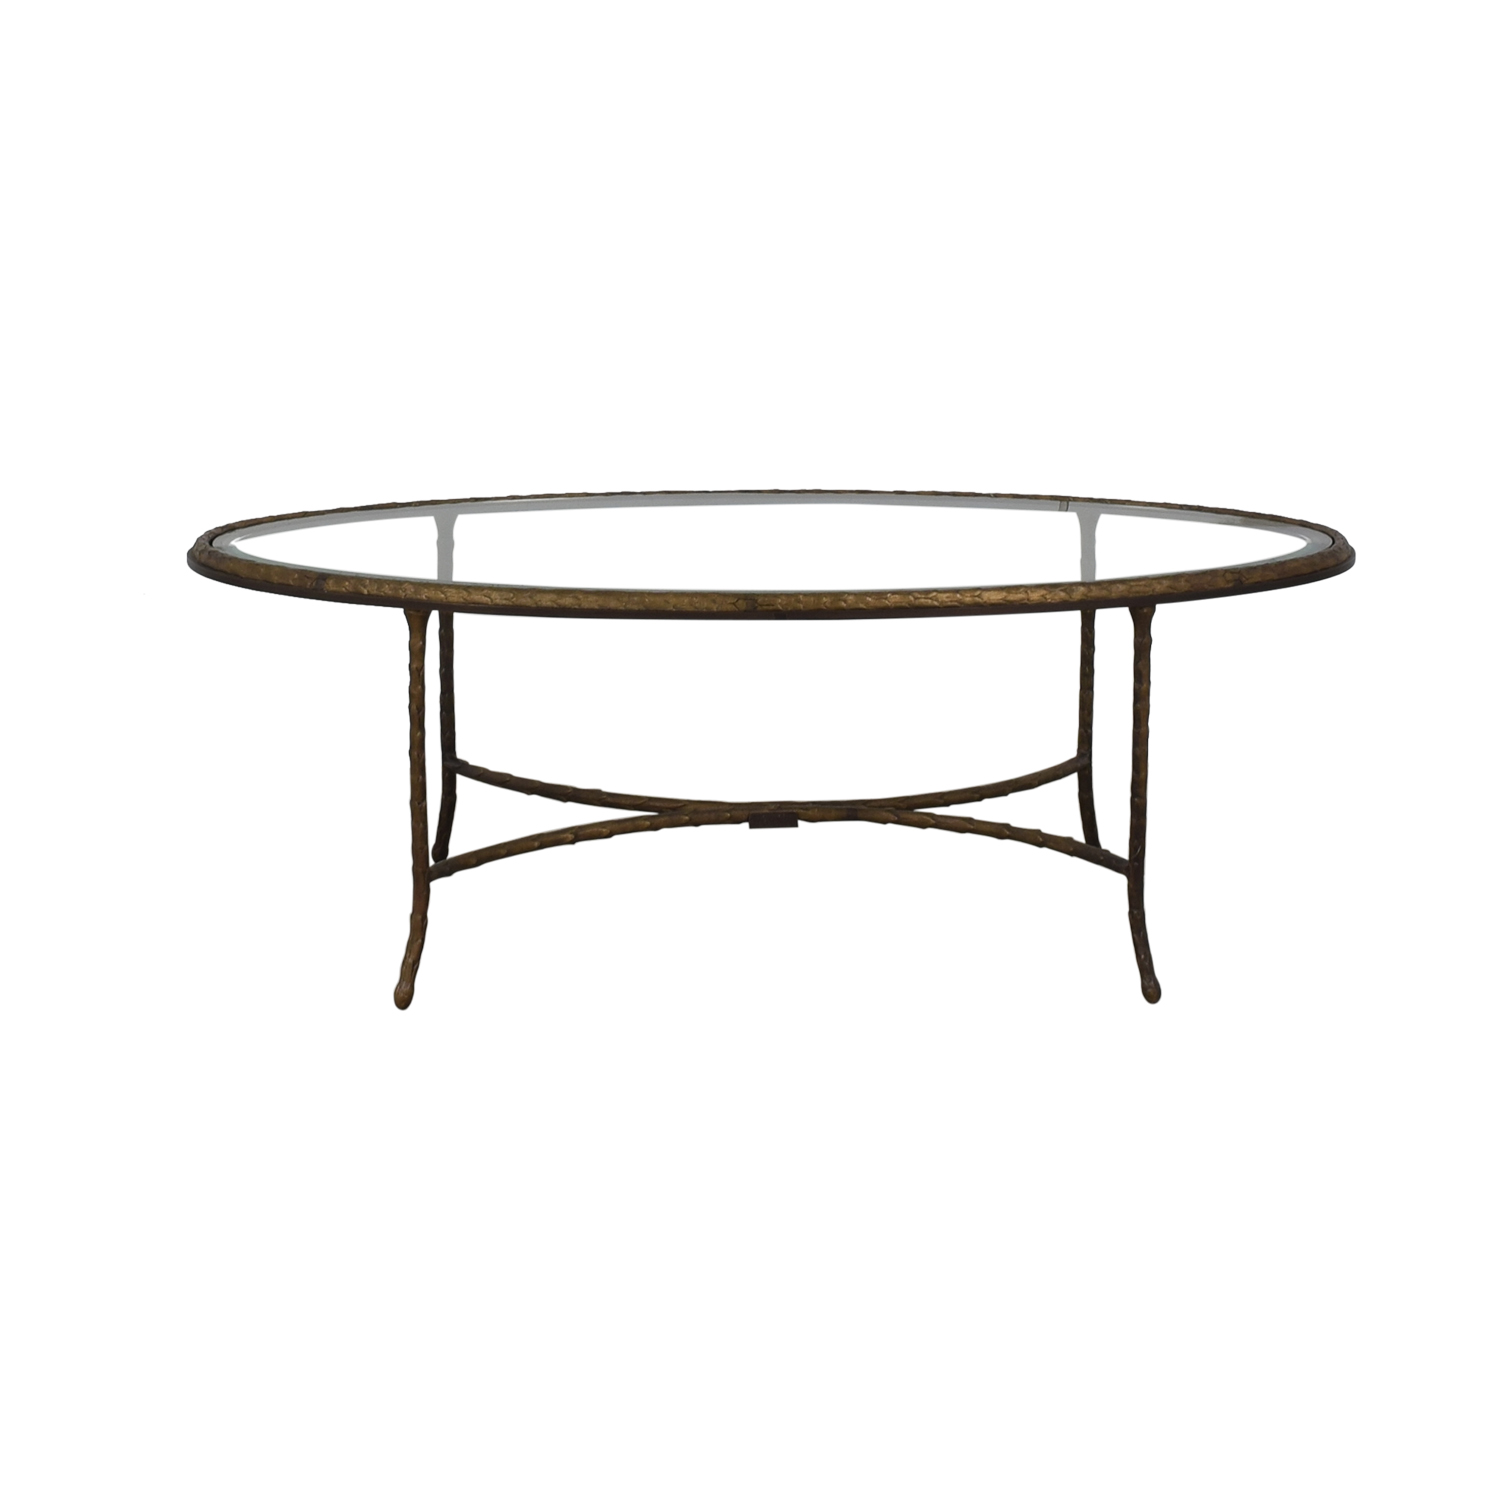 Beau 83% OFF   Oval Glass Top Coffee Table / Tables